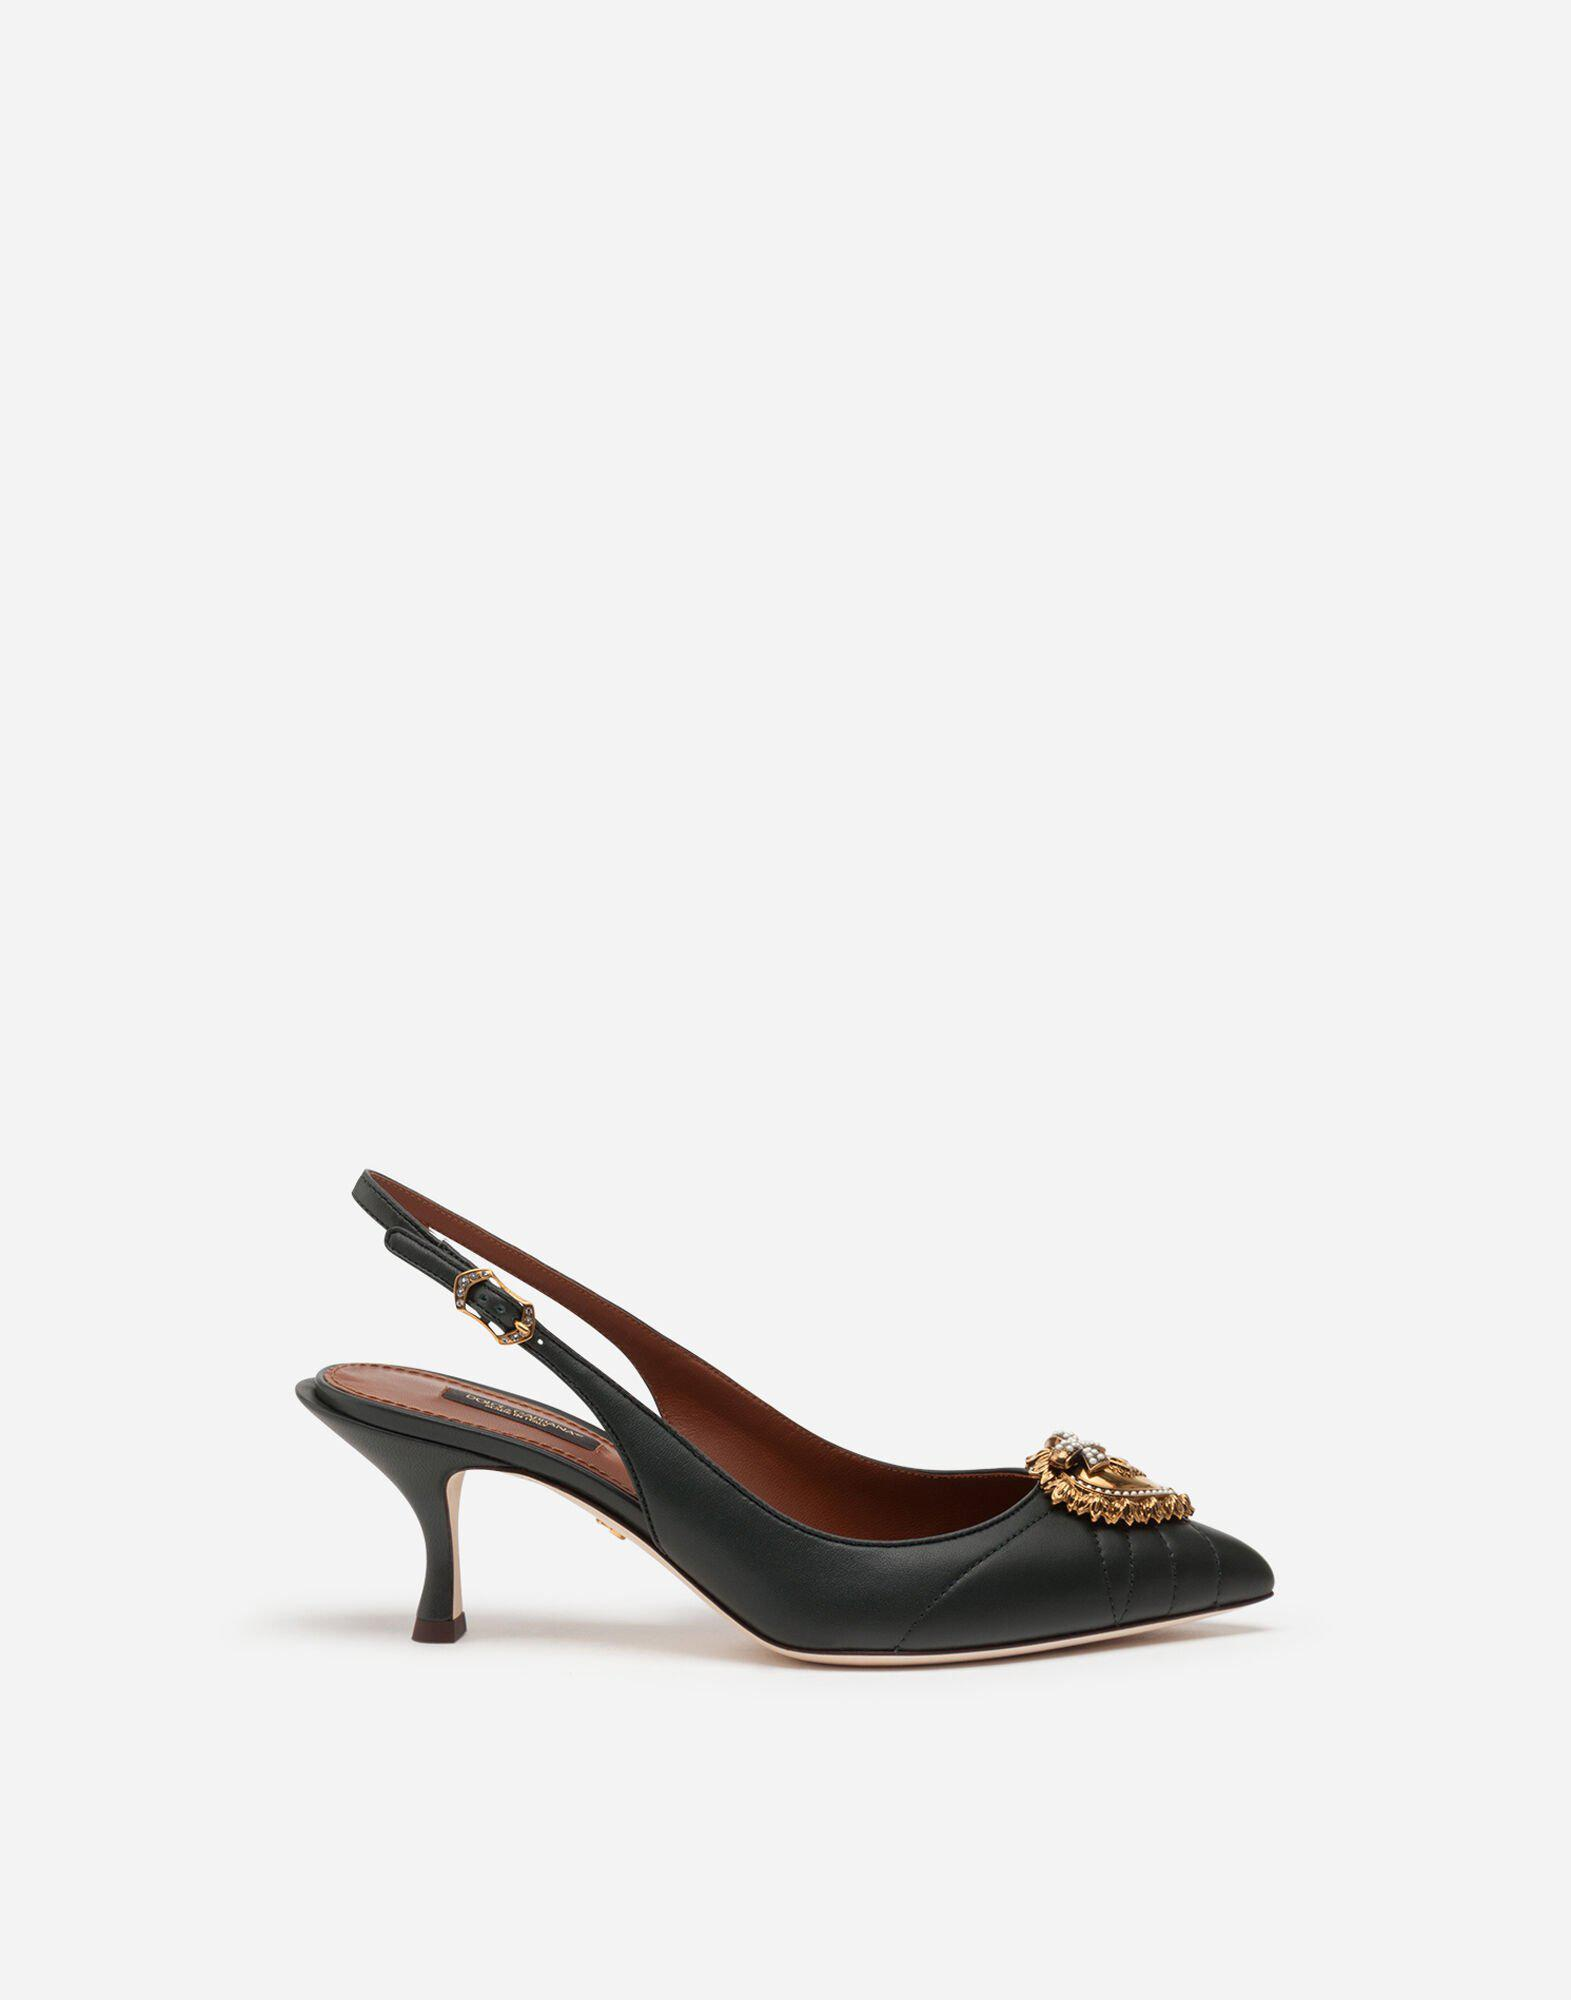 Quilted nappa leather Devotion slingbacks